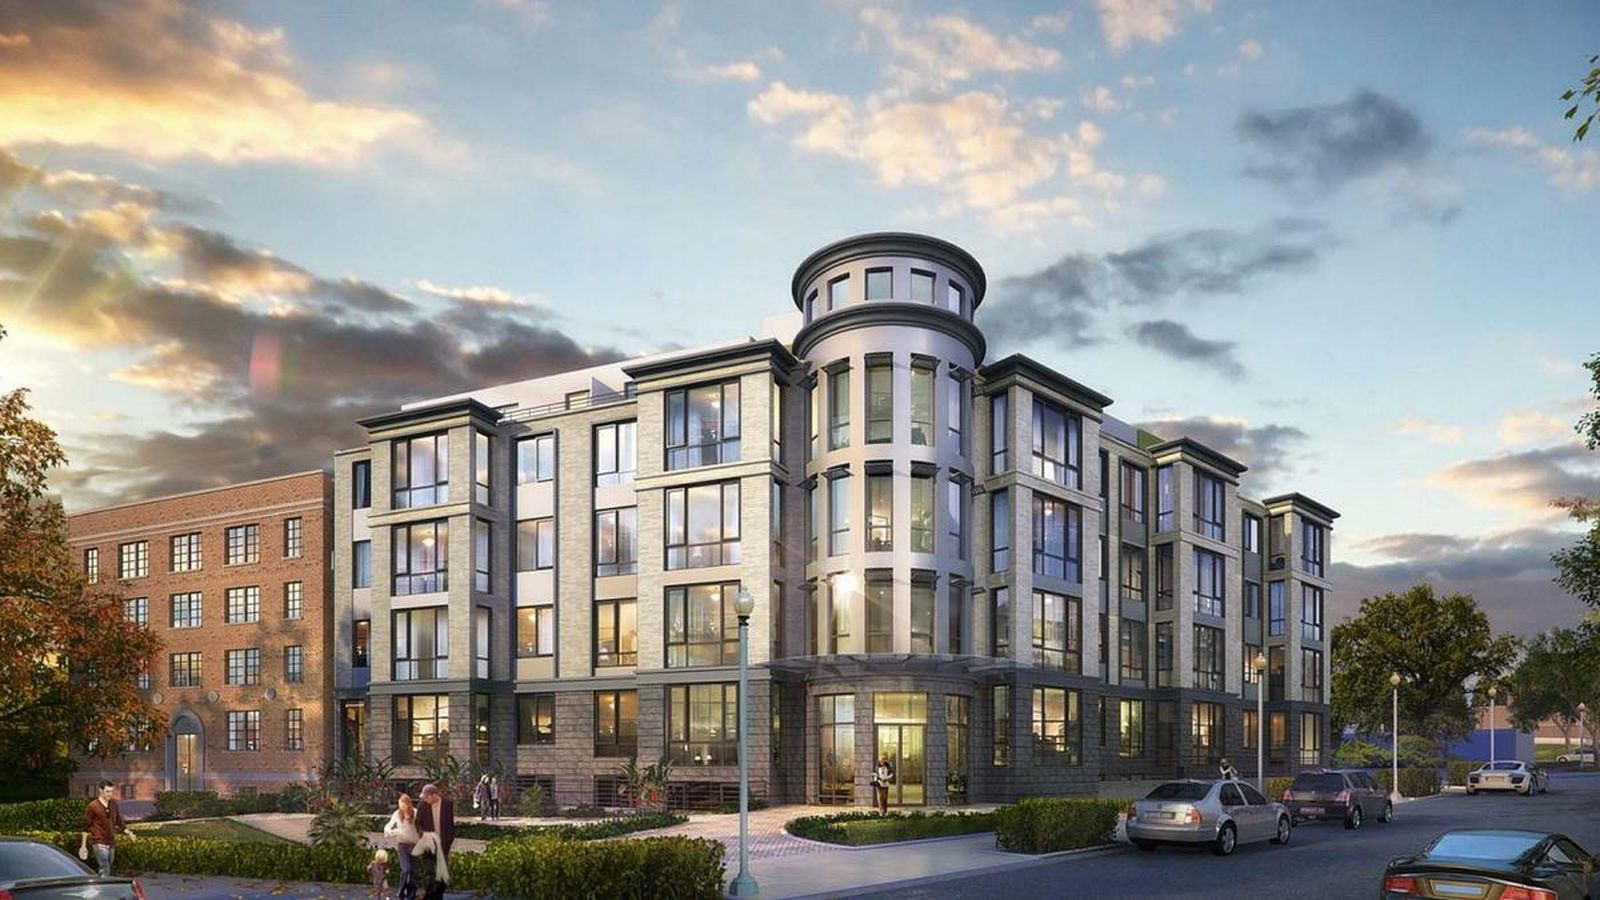 New Barracks Row Project Plans 46 Apartments Curbed Dc